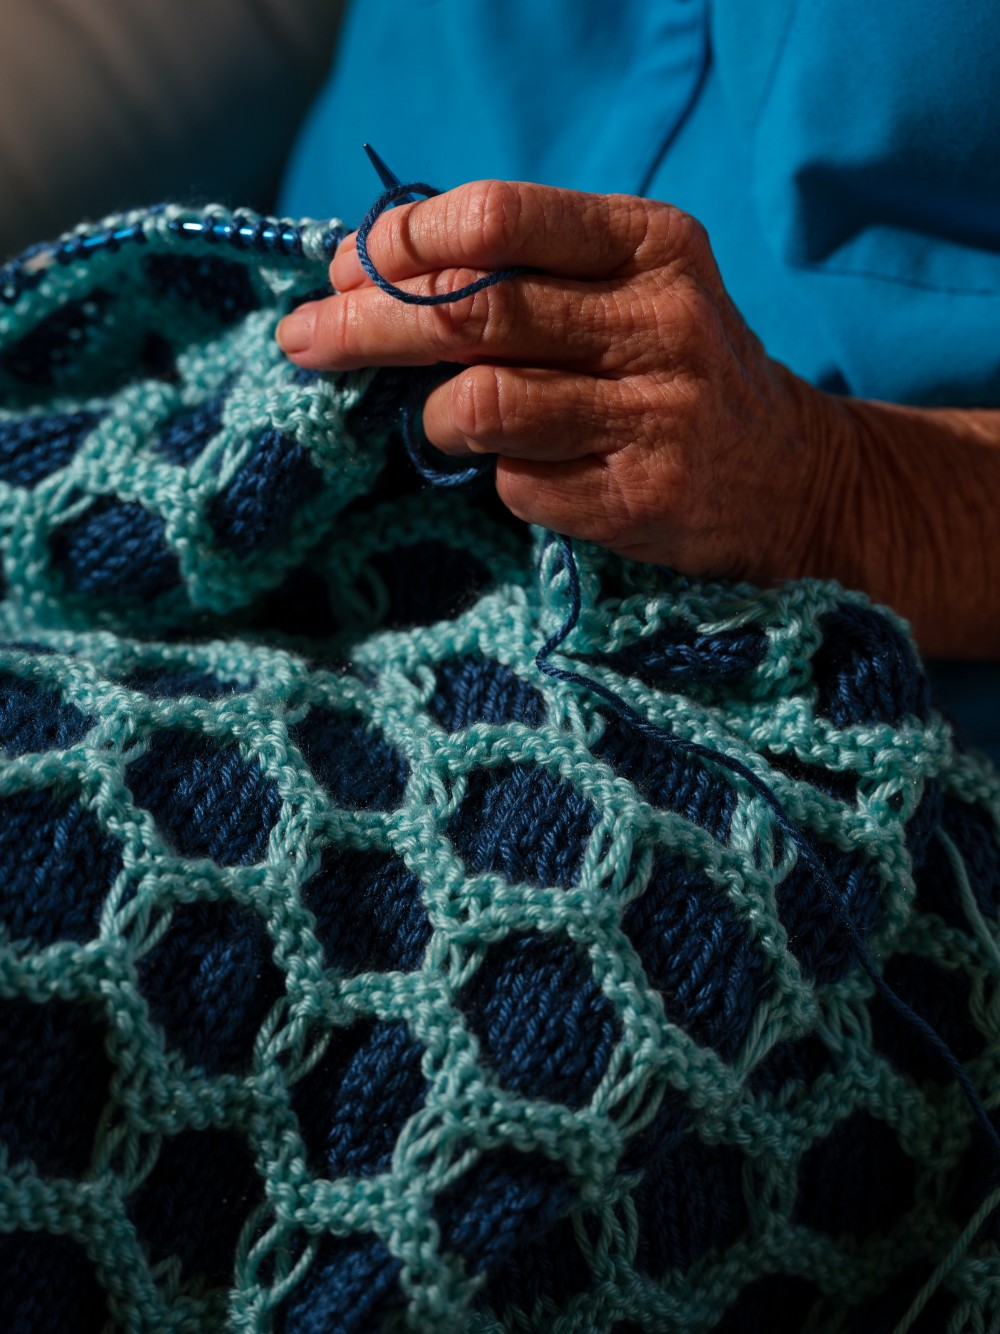 Jane Dorotik works on a blanket she is knitting, October 8, 2020.